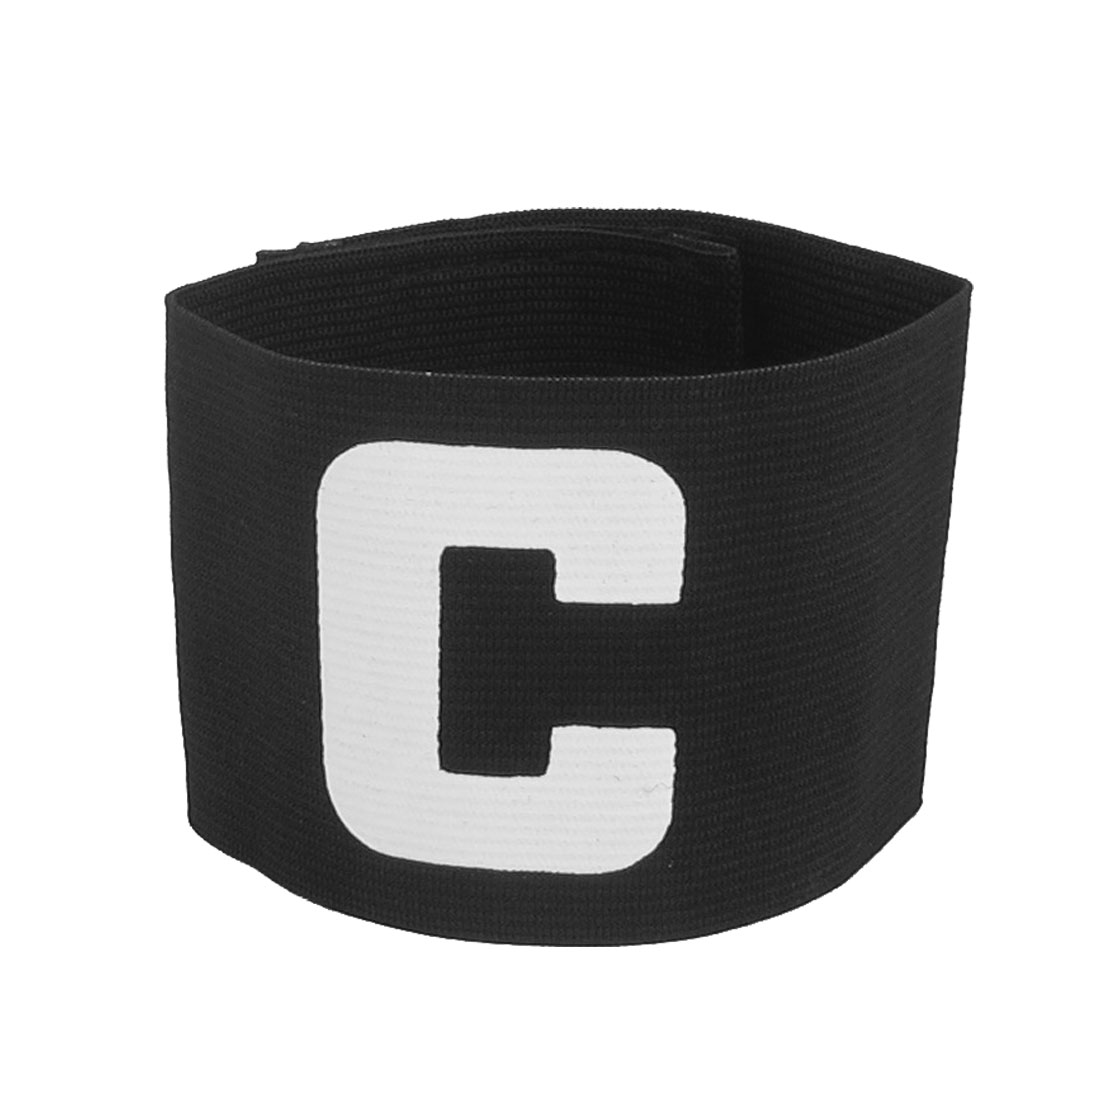 Hook Loop Fastener Letter C Printed Stretchy Football Soccer Sports Captain Armband Sleeve Black